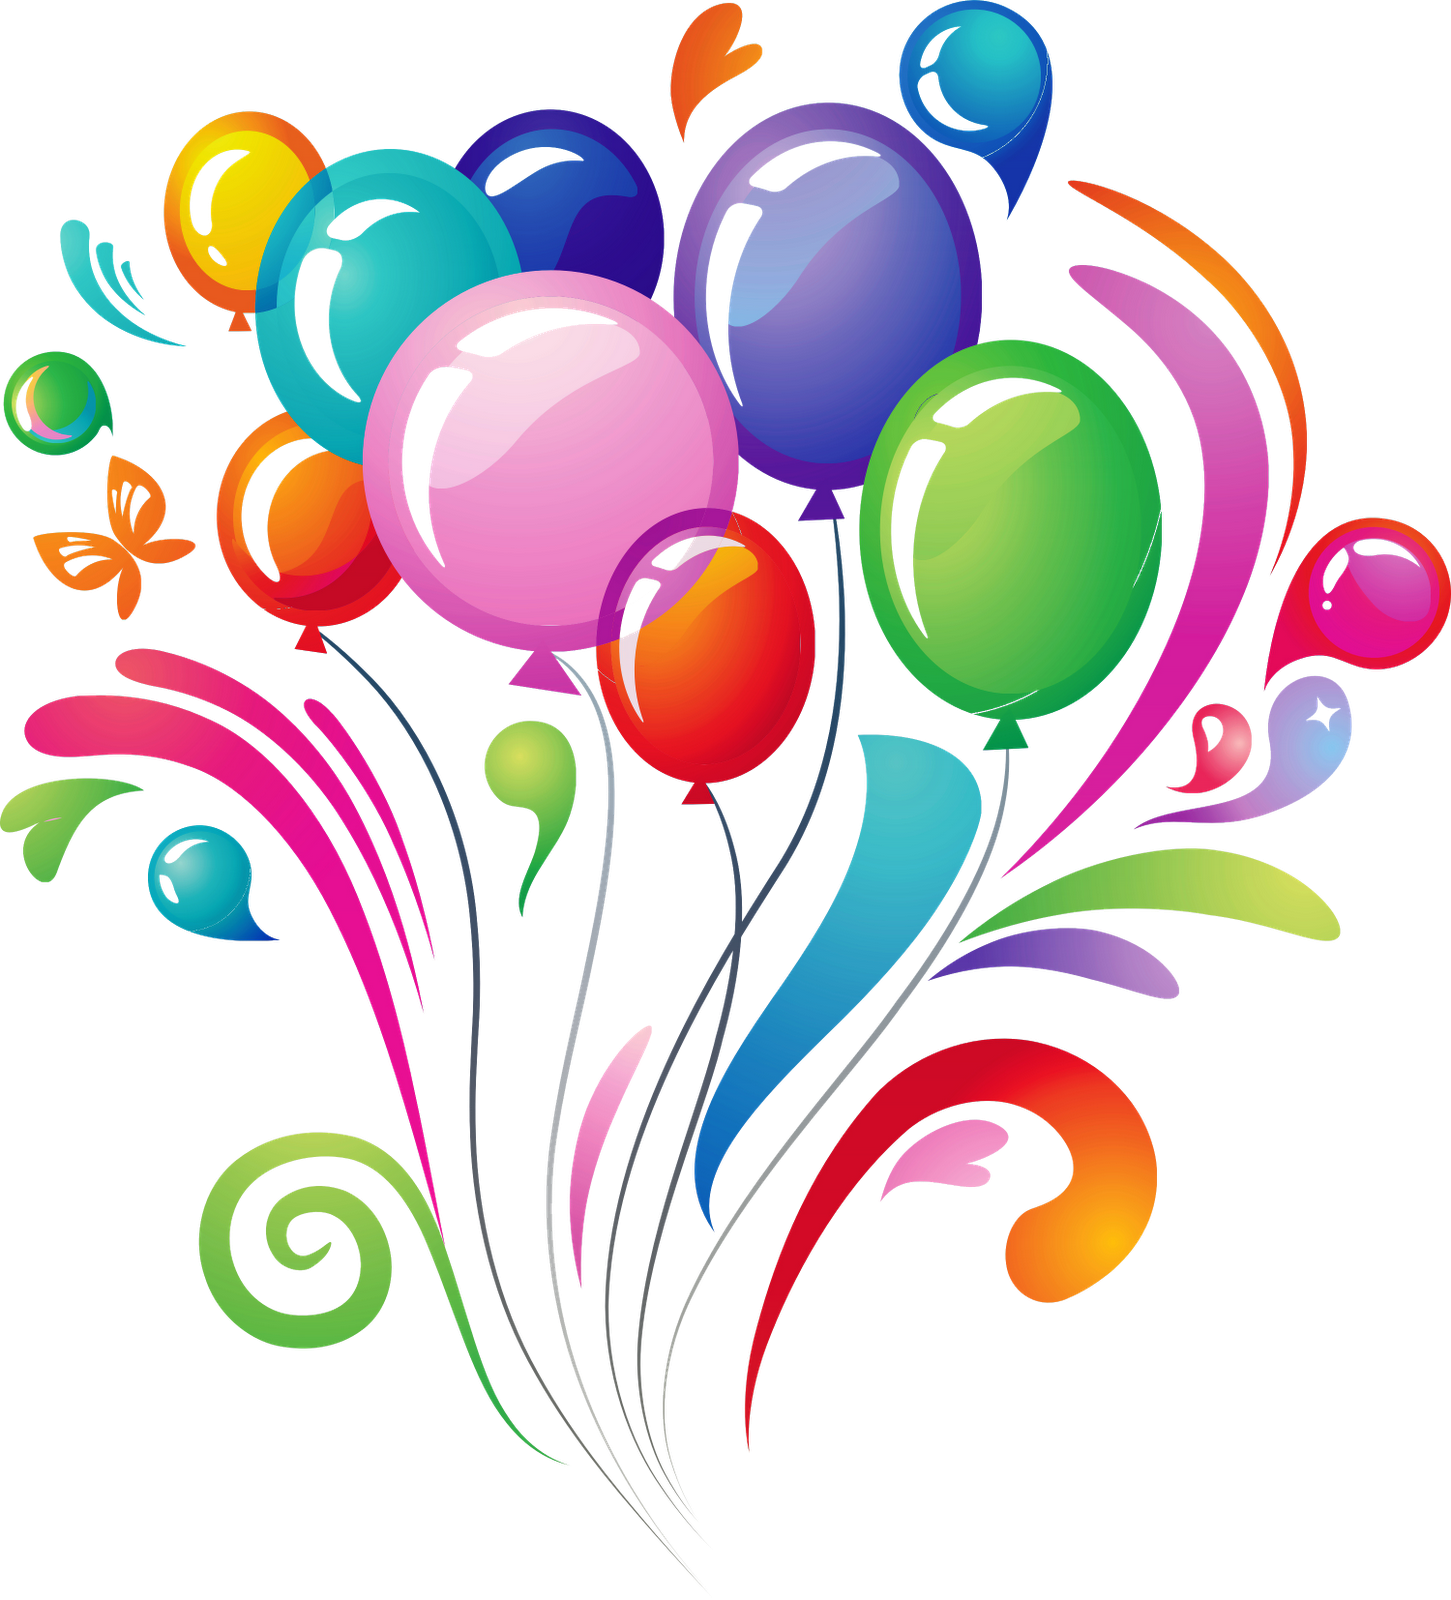 Transparent images all photo. Happy birthday balloons png royalty free library